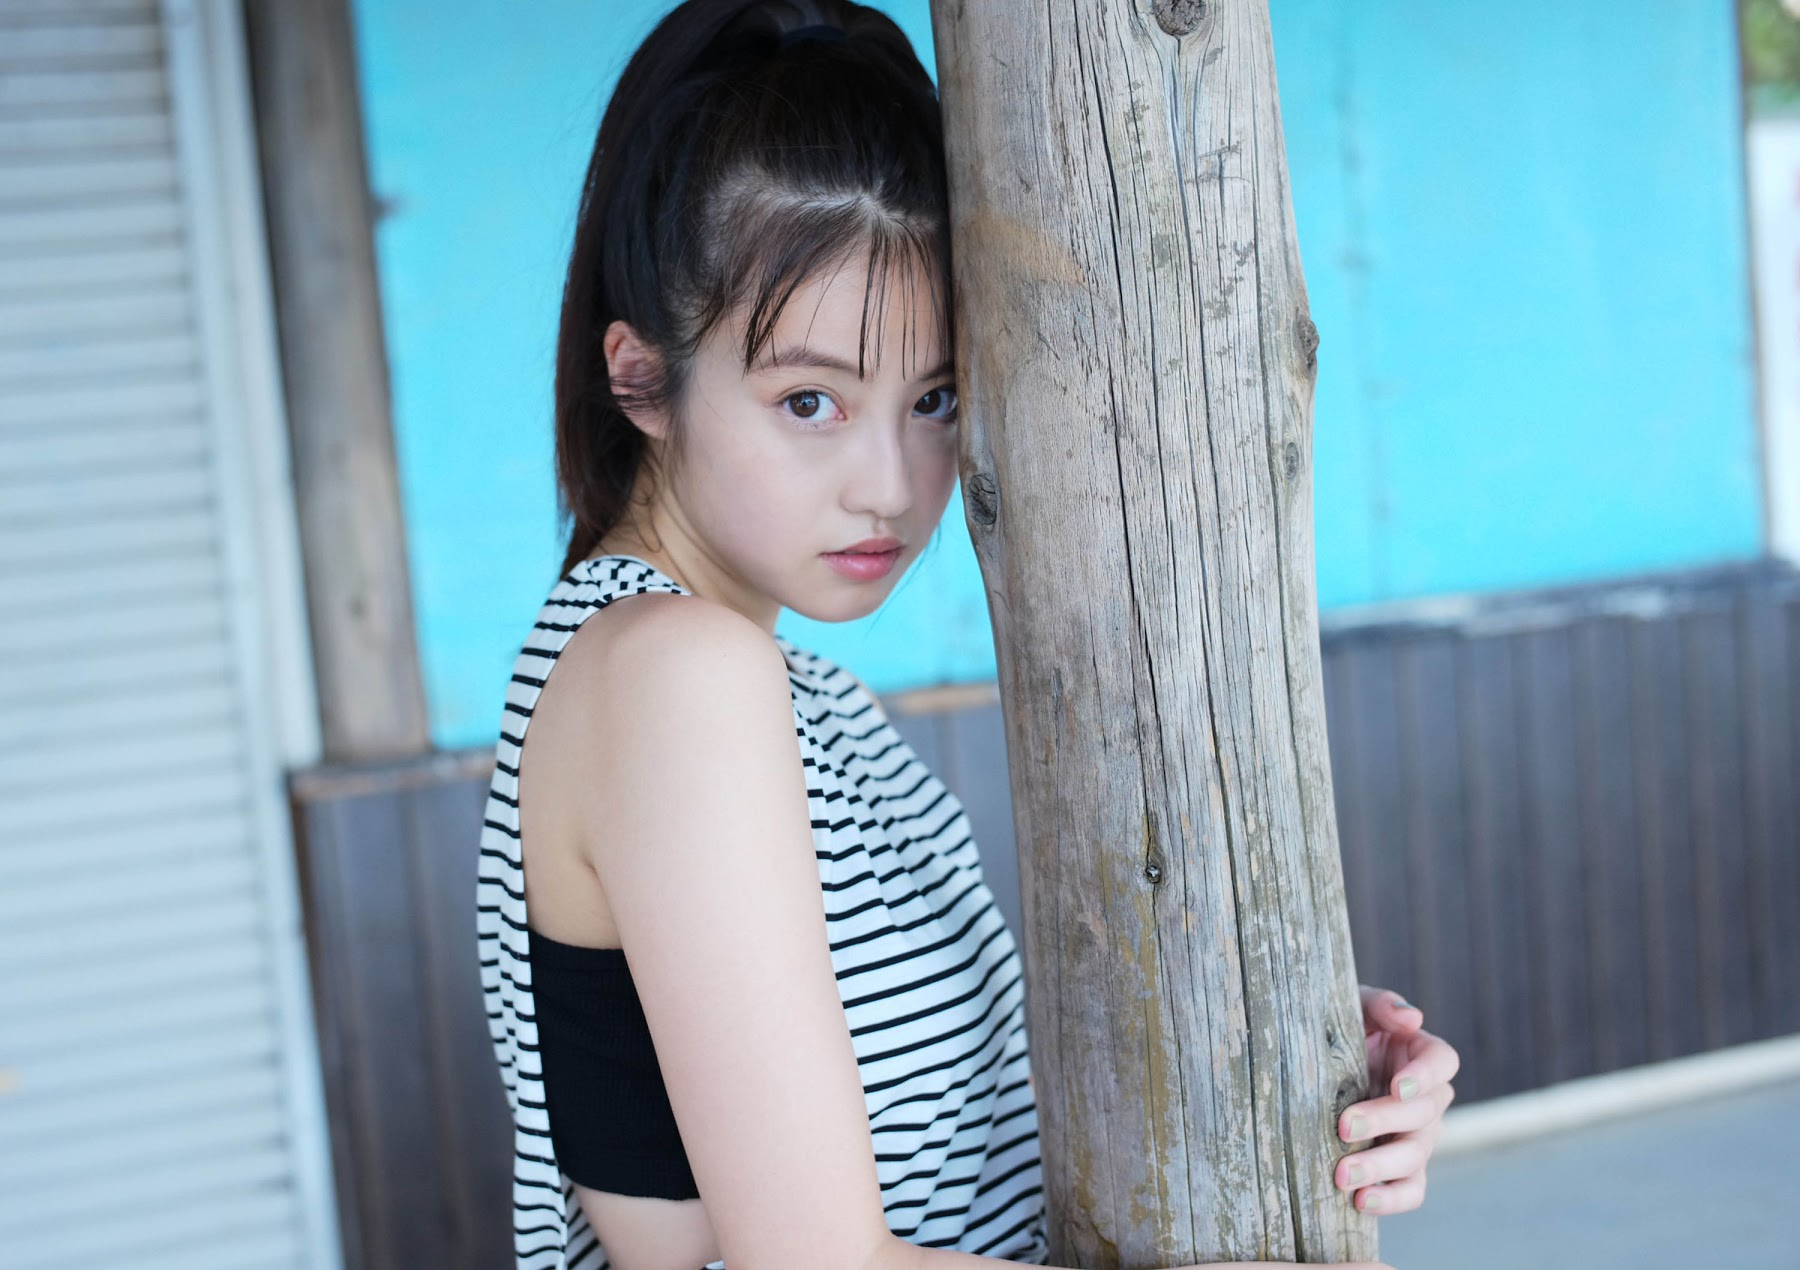 Without a doubt the youngest actress Mio Imada022